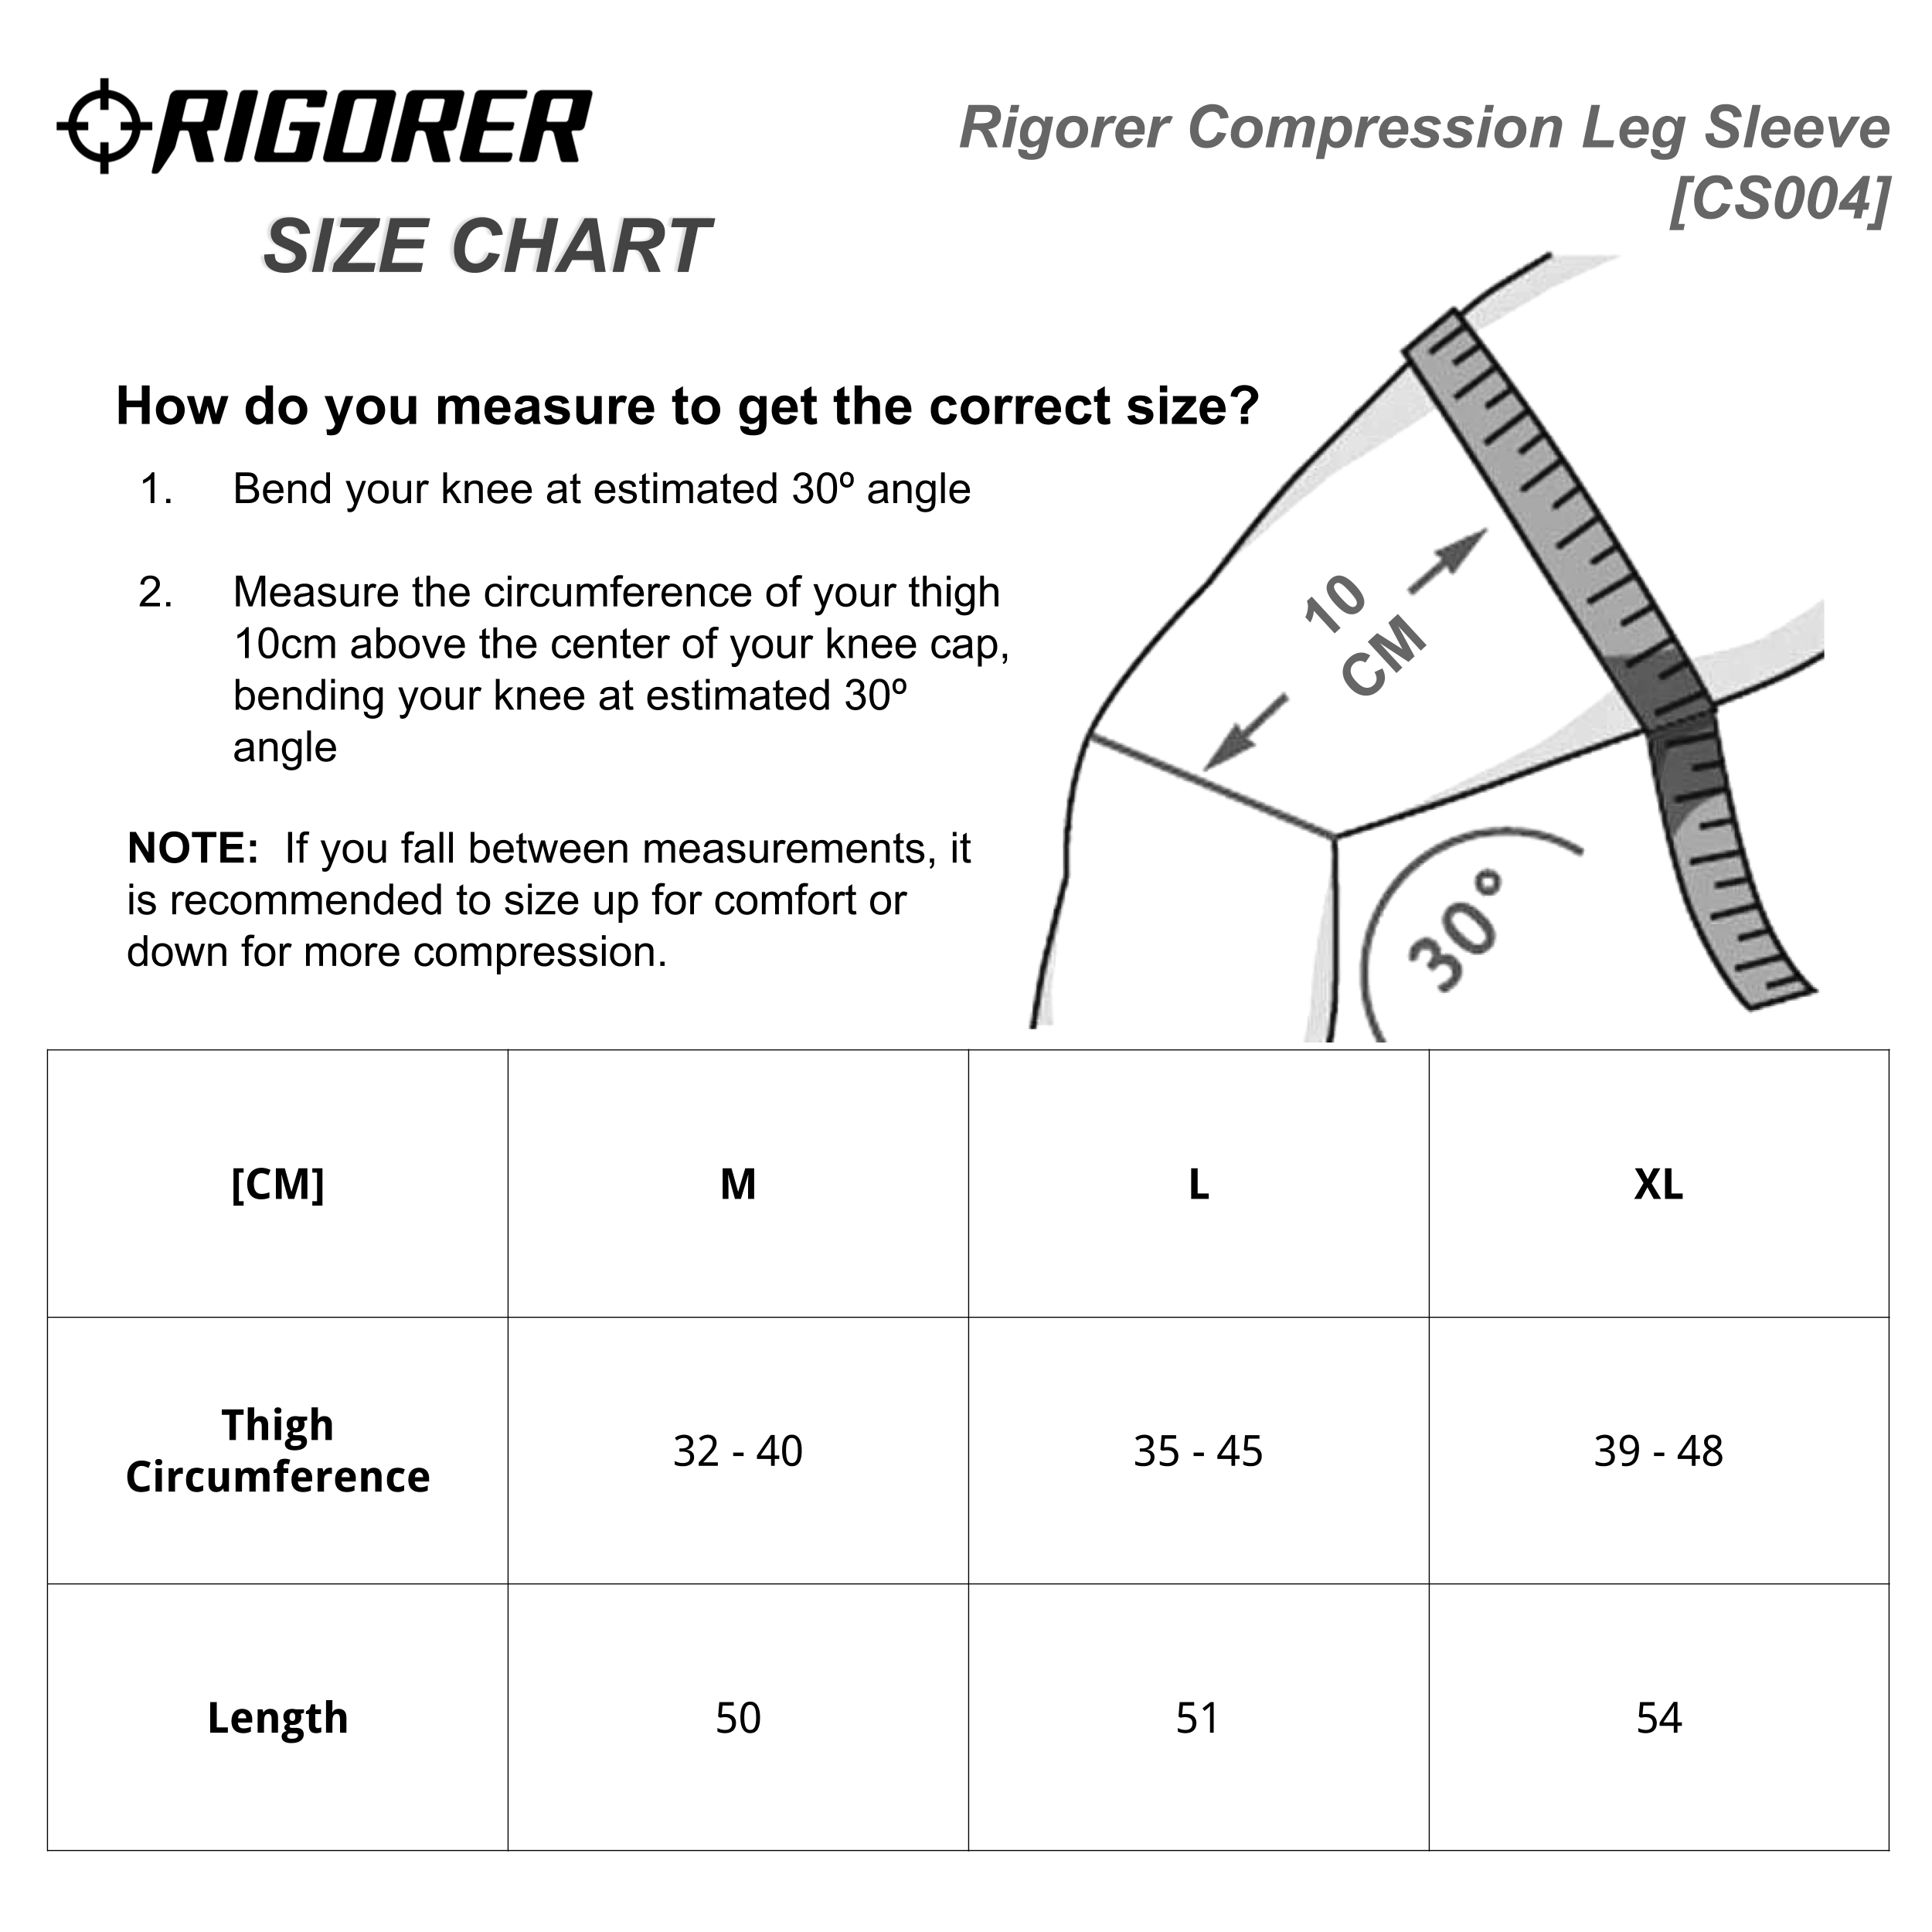 Rigorer Compression Leg Sleeve [CS004] Sizing Chart